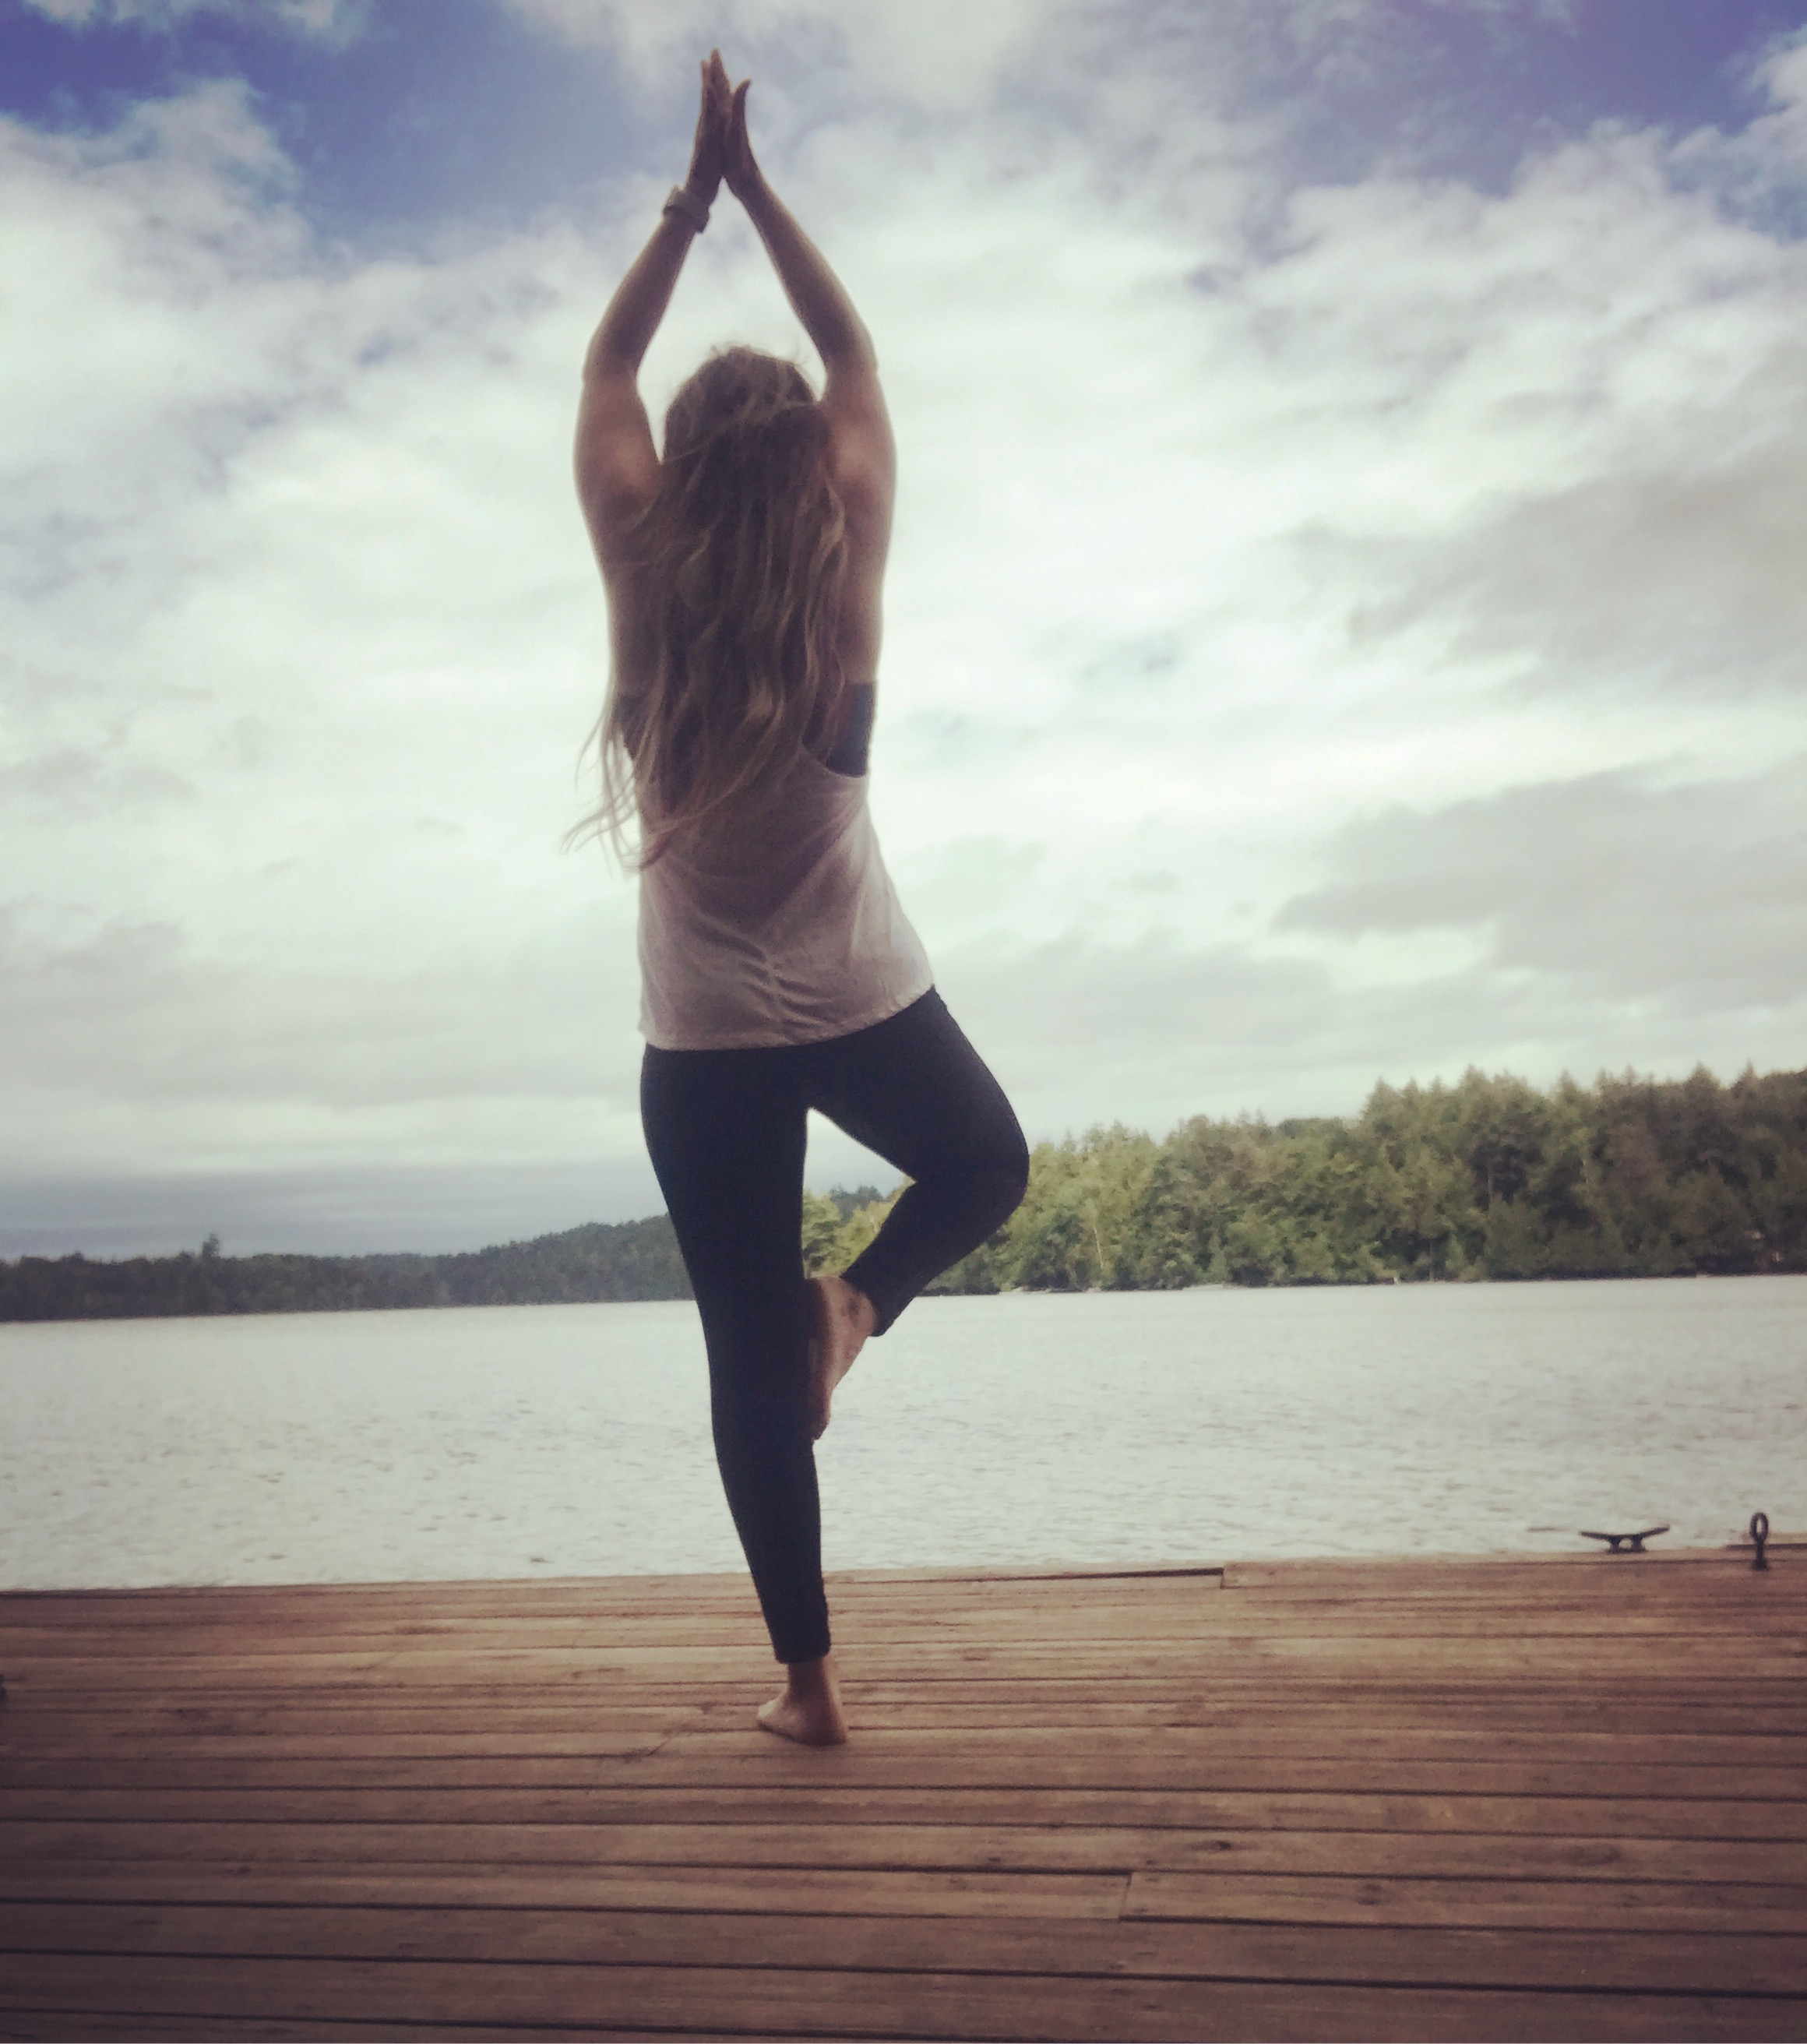 Yoga and Meditation on the Dock - On our most recent trip to upstate, NY, I dove into learning more about meditation. Rain or shine, I took the time everyday to tame my brain and find peace.